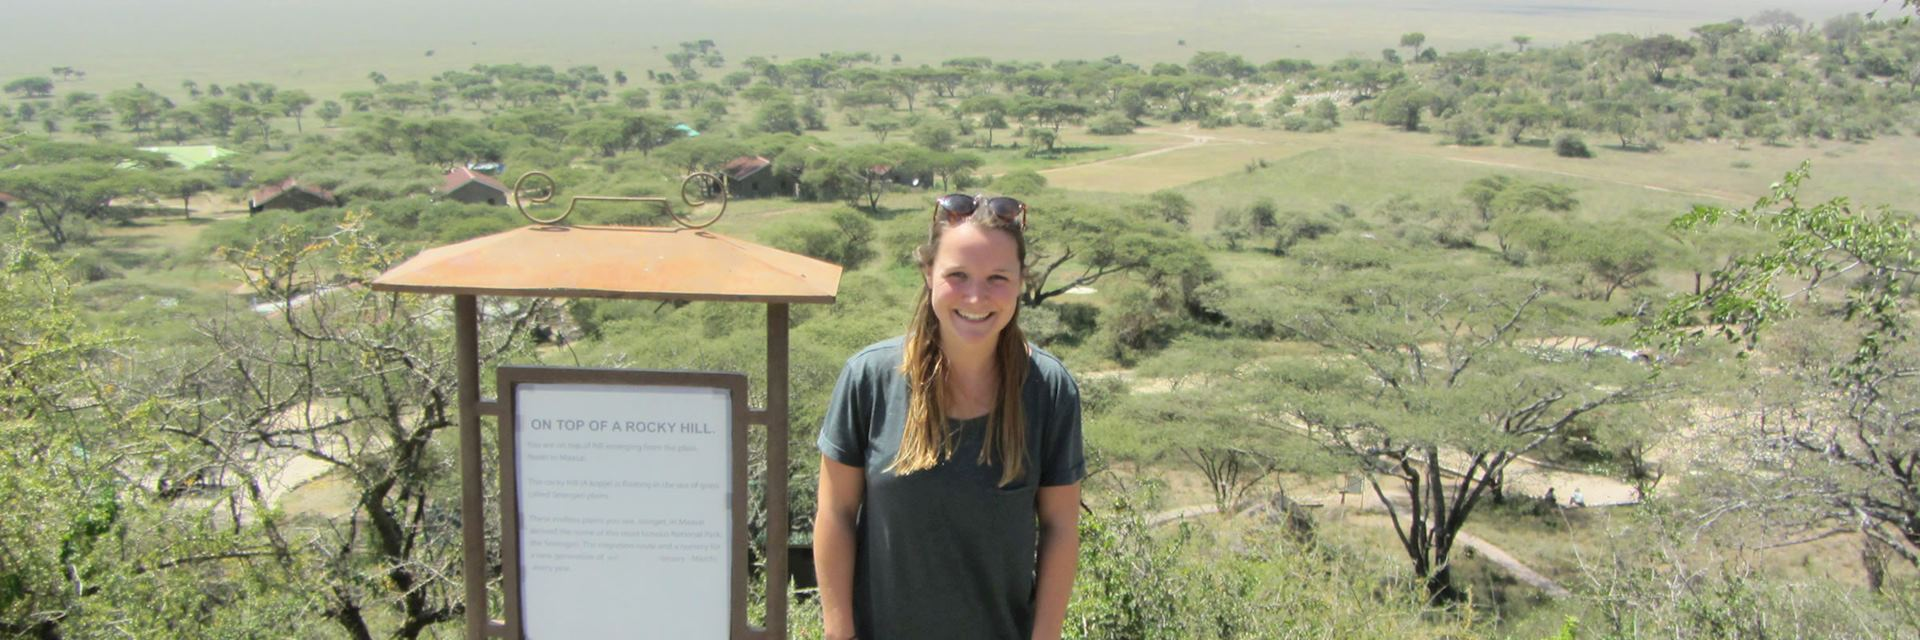 Izzy in the Serengeti, Tanzania